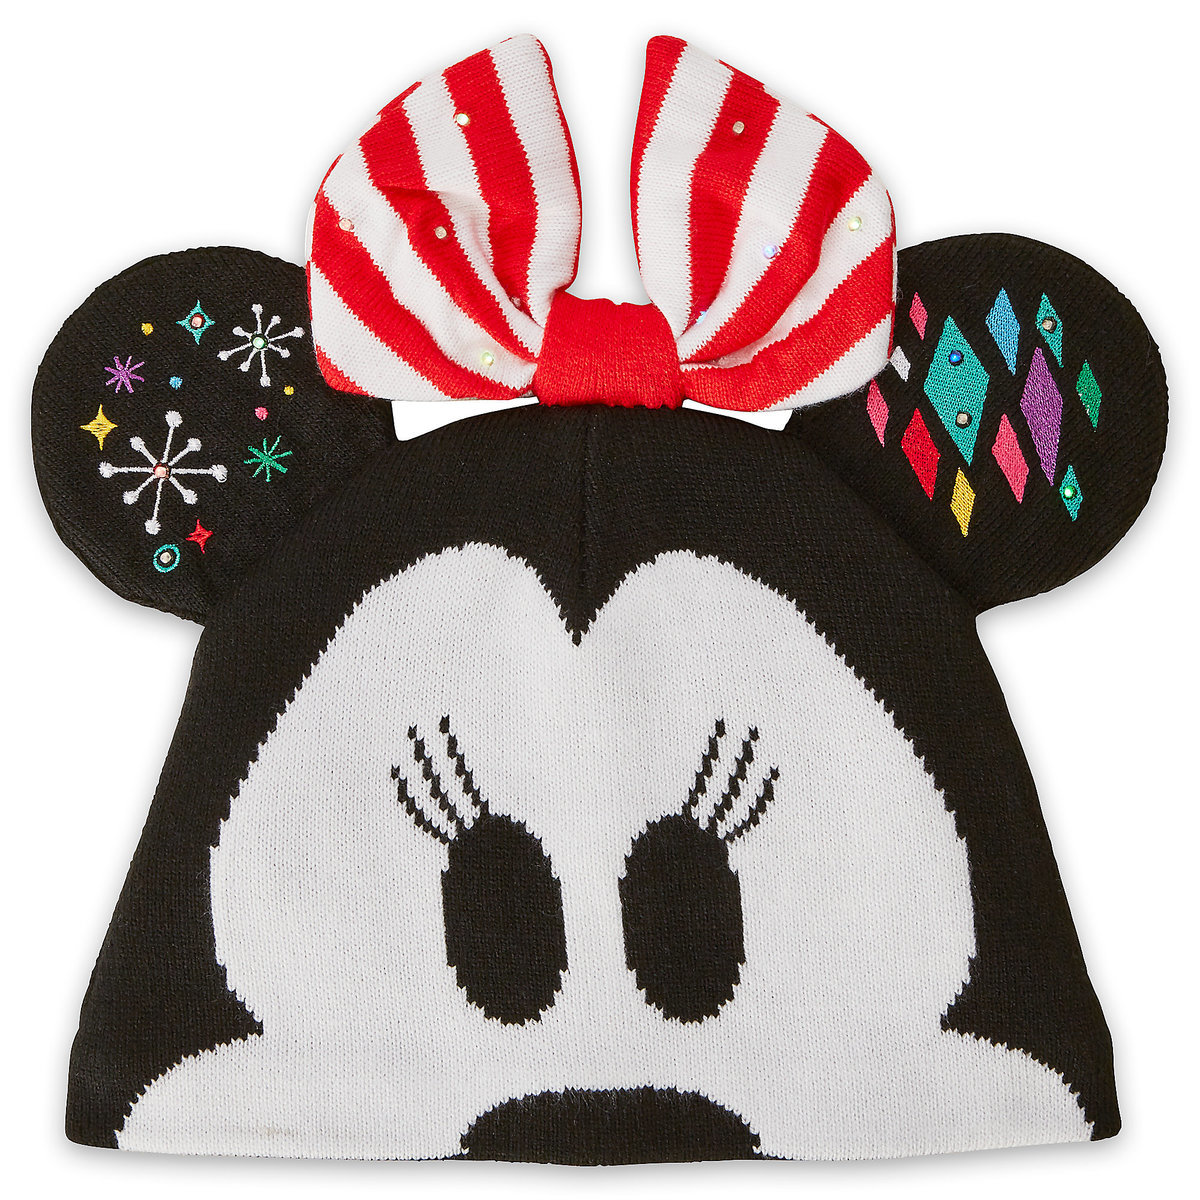 5320f191c16 Product Image of Minnie Mouse Light-Up Knit Holiday Ear Hat for Adults   1